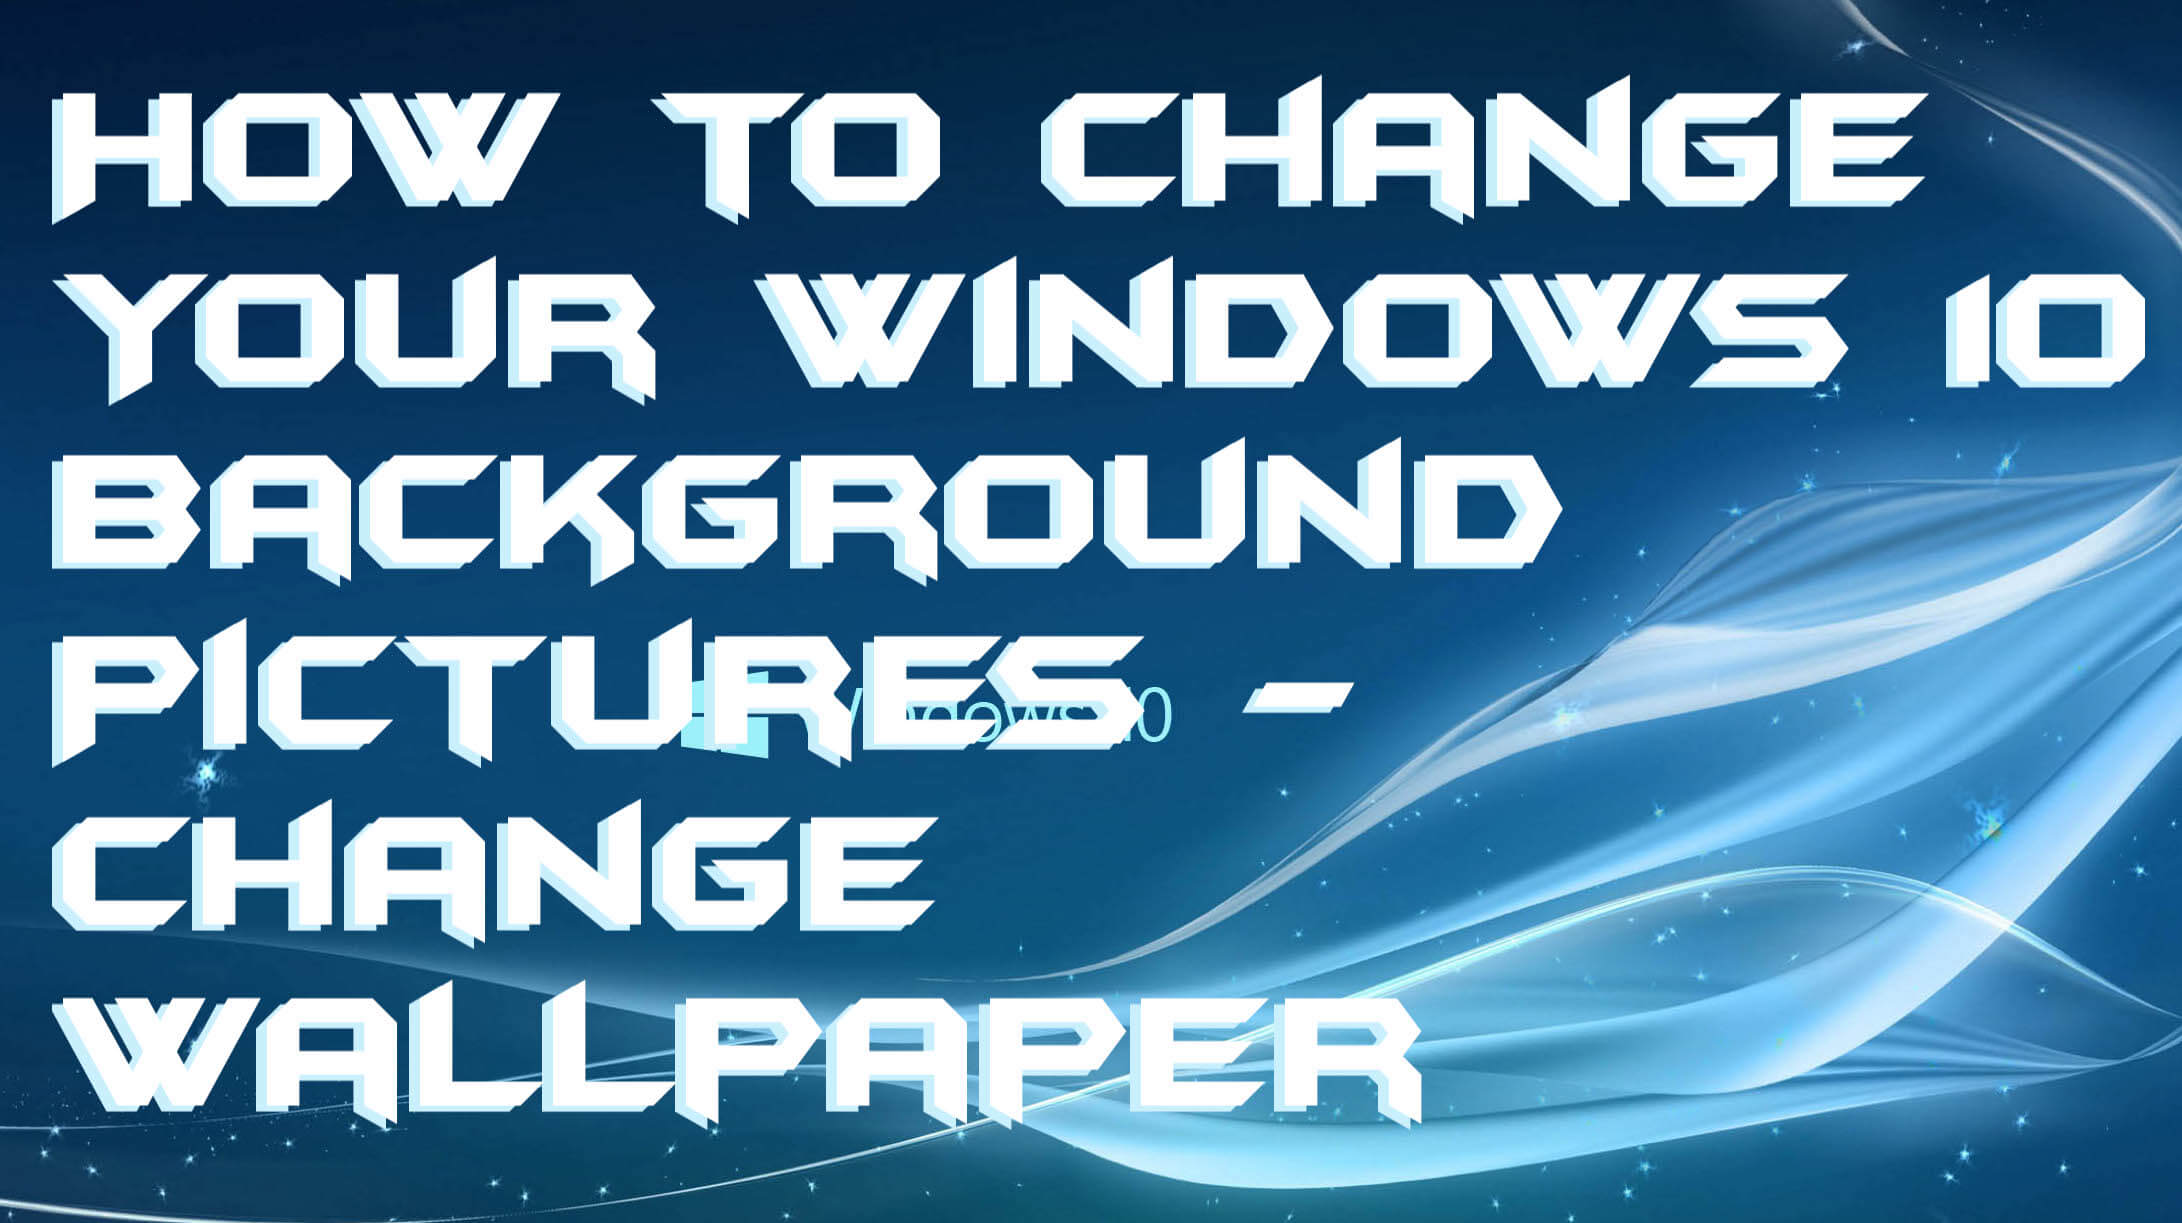 How to Change Your Windows 10 Background Pictures - Change Wallpaper